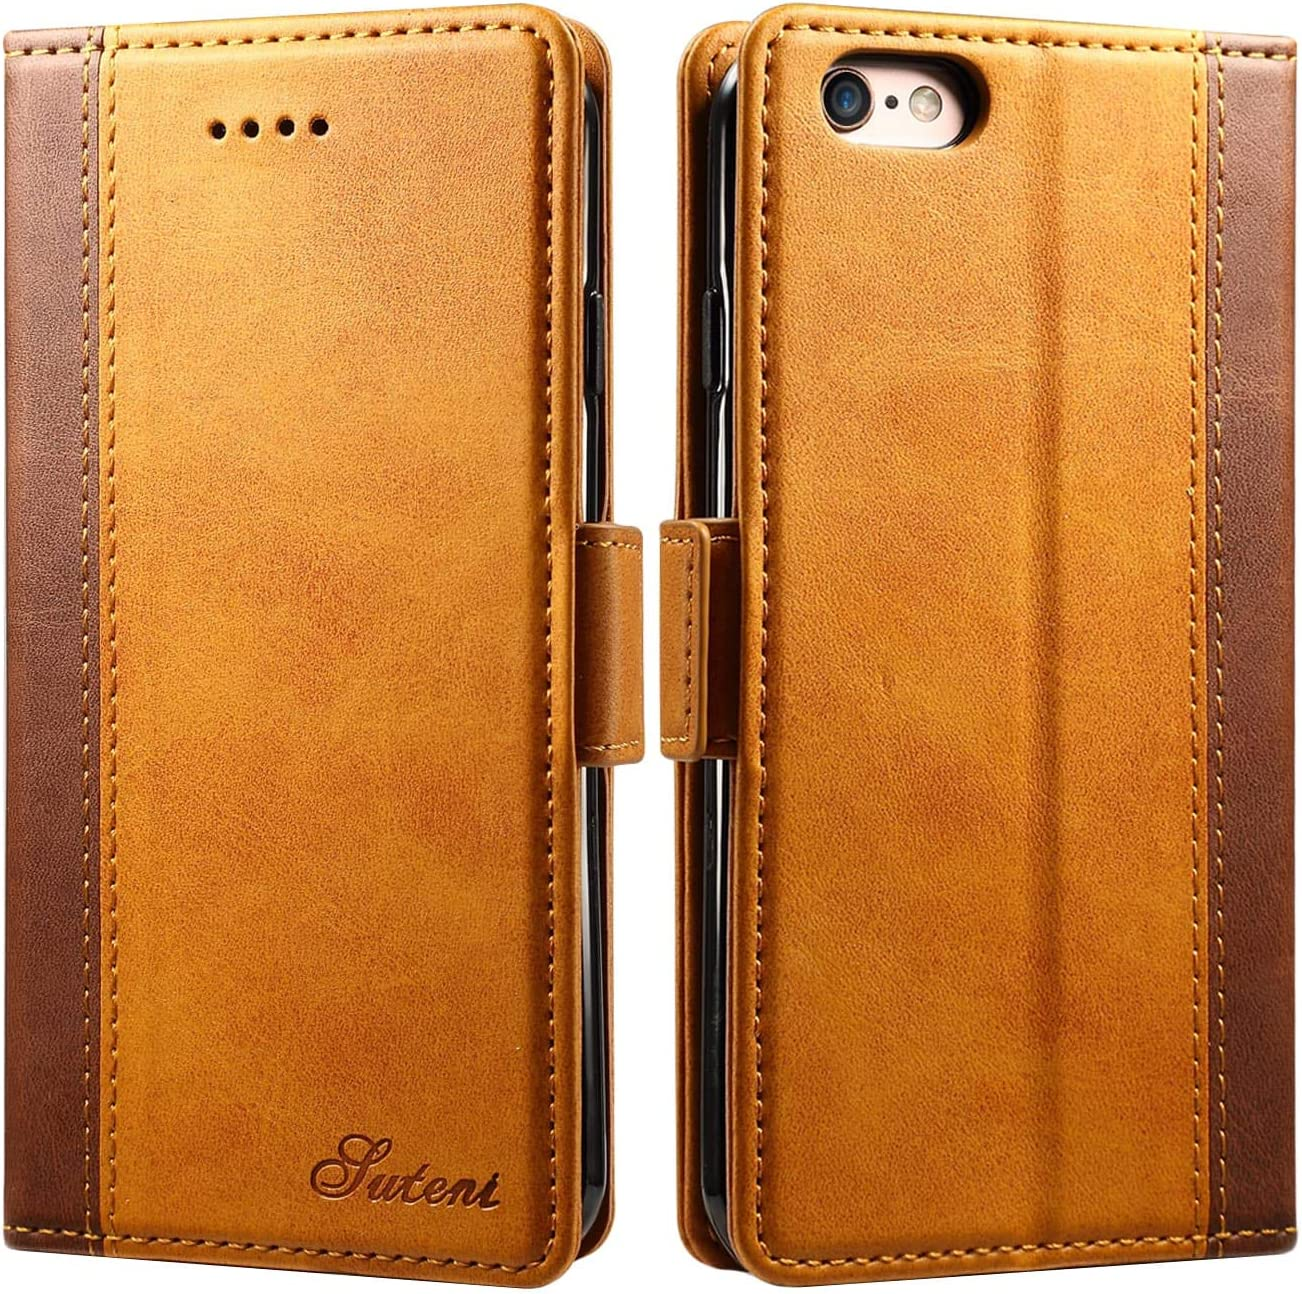 iPhone 6 / 6s Wallet Case, SINIANL Leather Magnetic Closure Folio Flip Cover Card Slots Holder with Kickstand TPU Shockproof Case